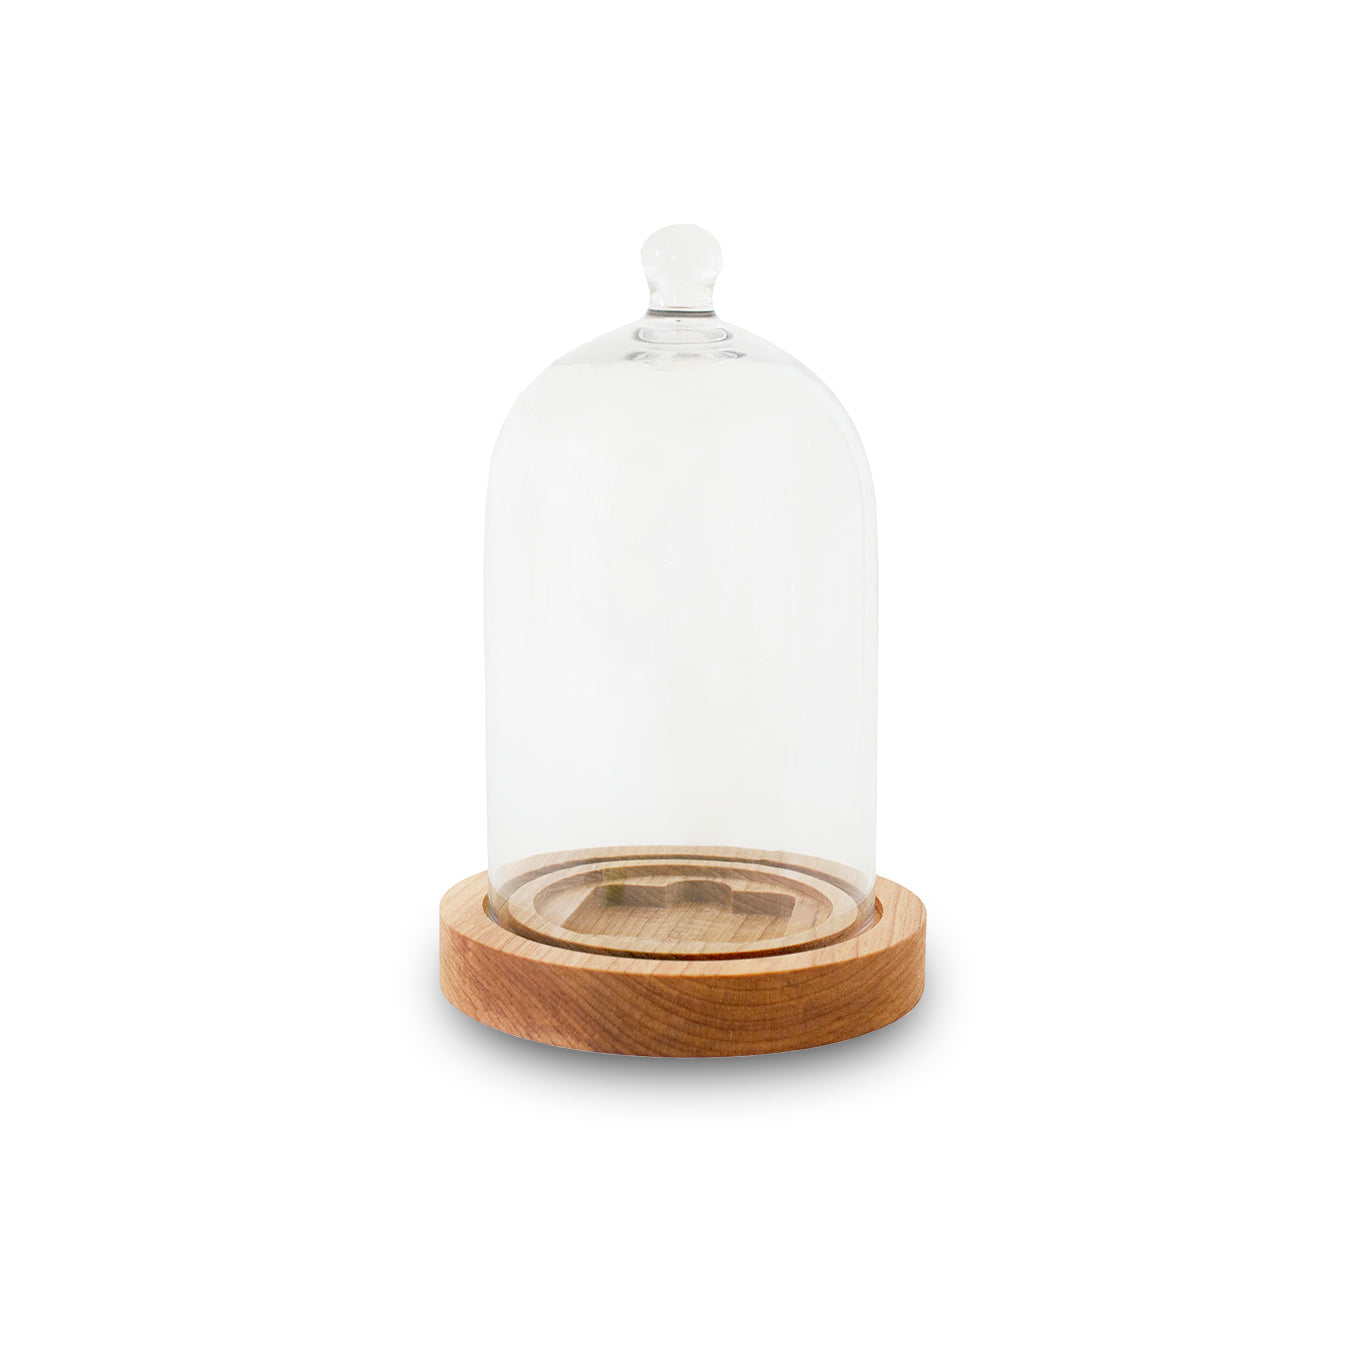 *LIMITED EDITION* Cloche + Base Candleholder